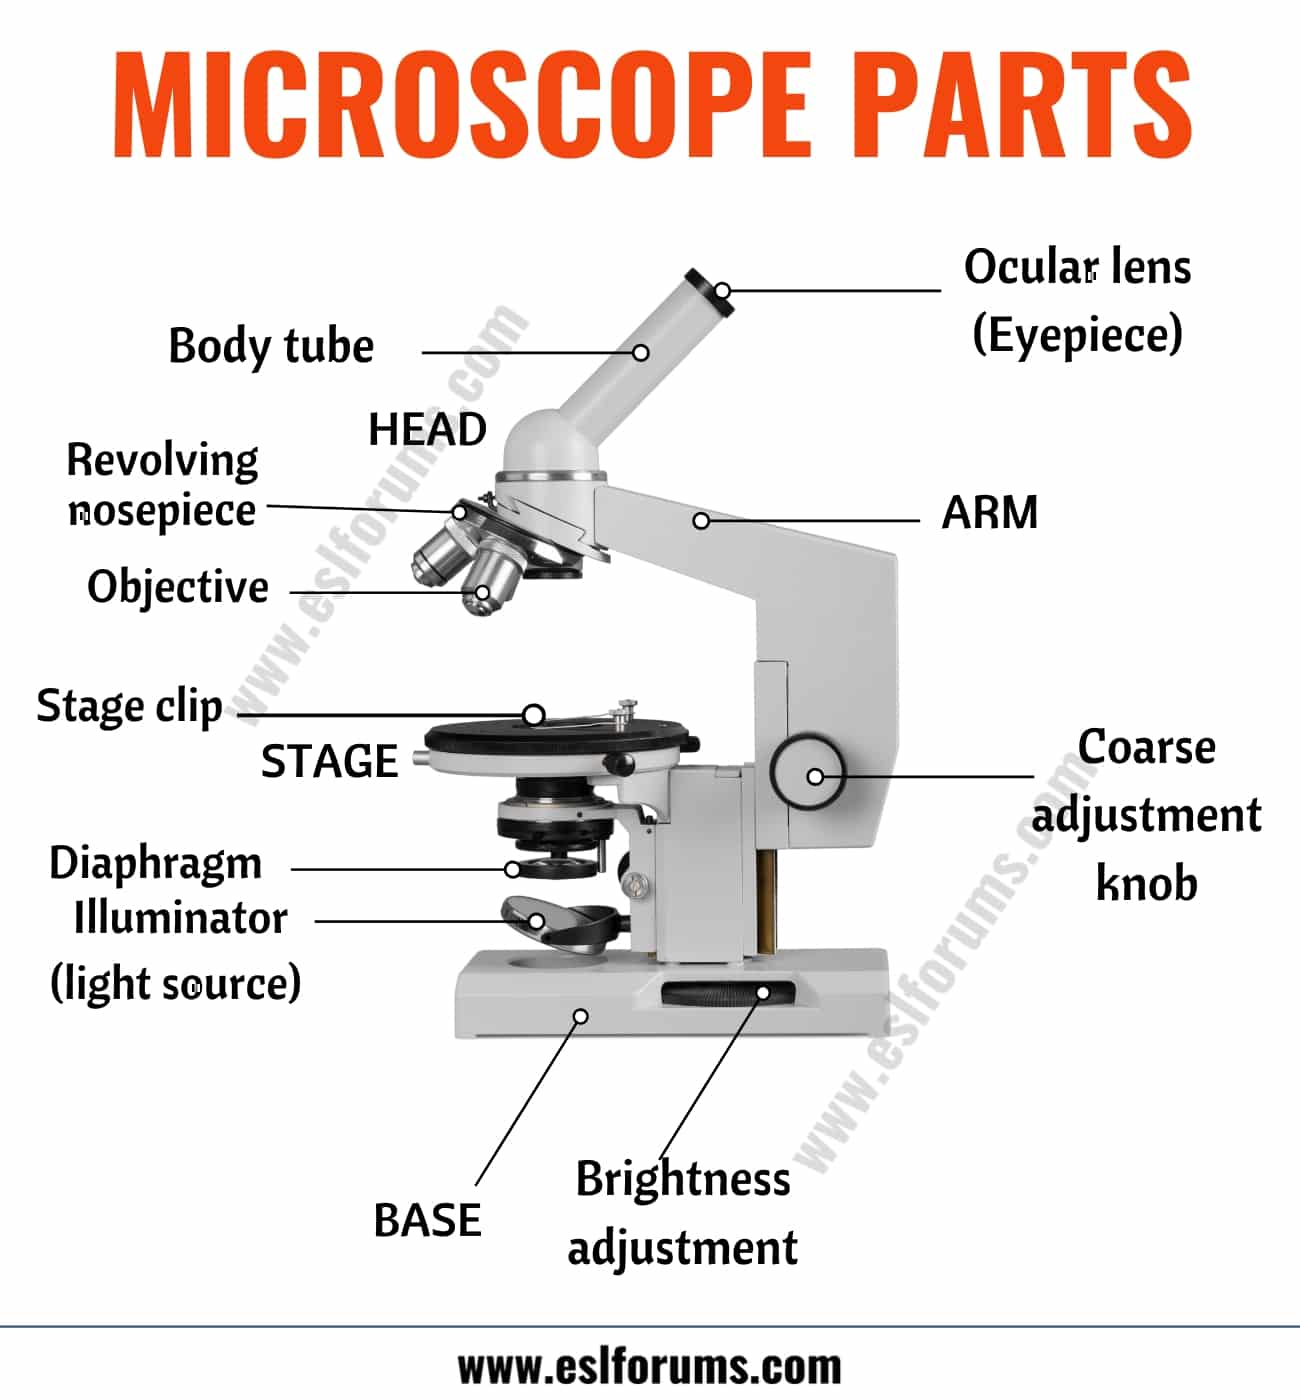 Parts of a Microscope: Useful List of Microscope Parts with ESL Picture!